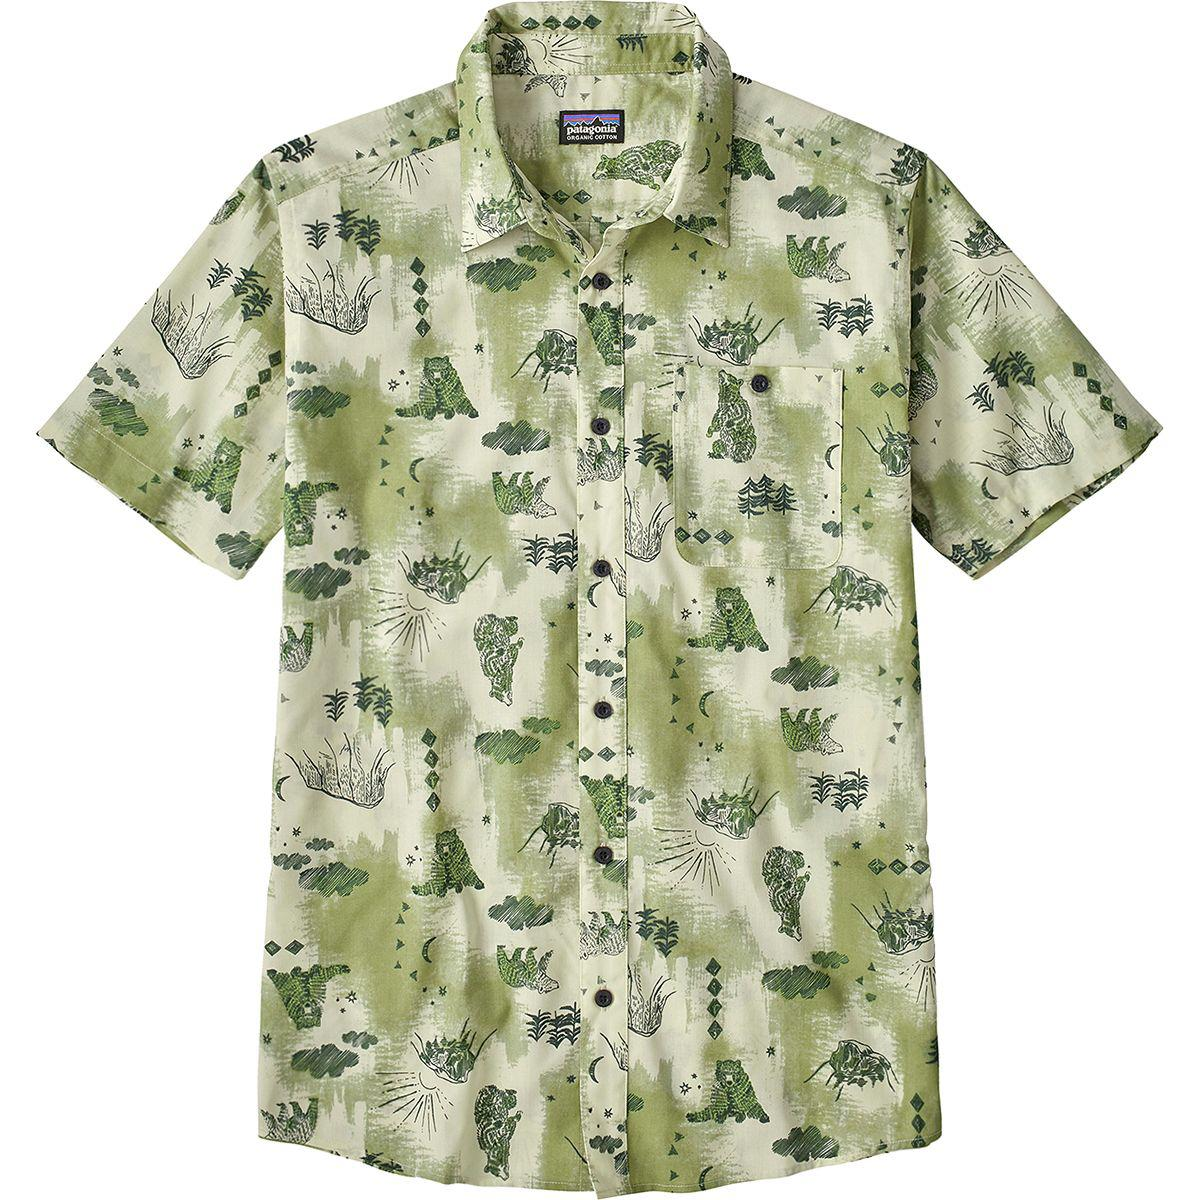 235bb53b52f9 Lyst - Patagonia Go To Slim Fit Shirt in Green for Men